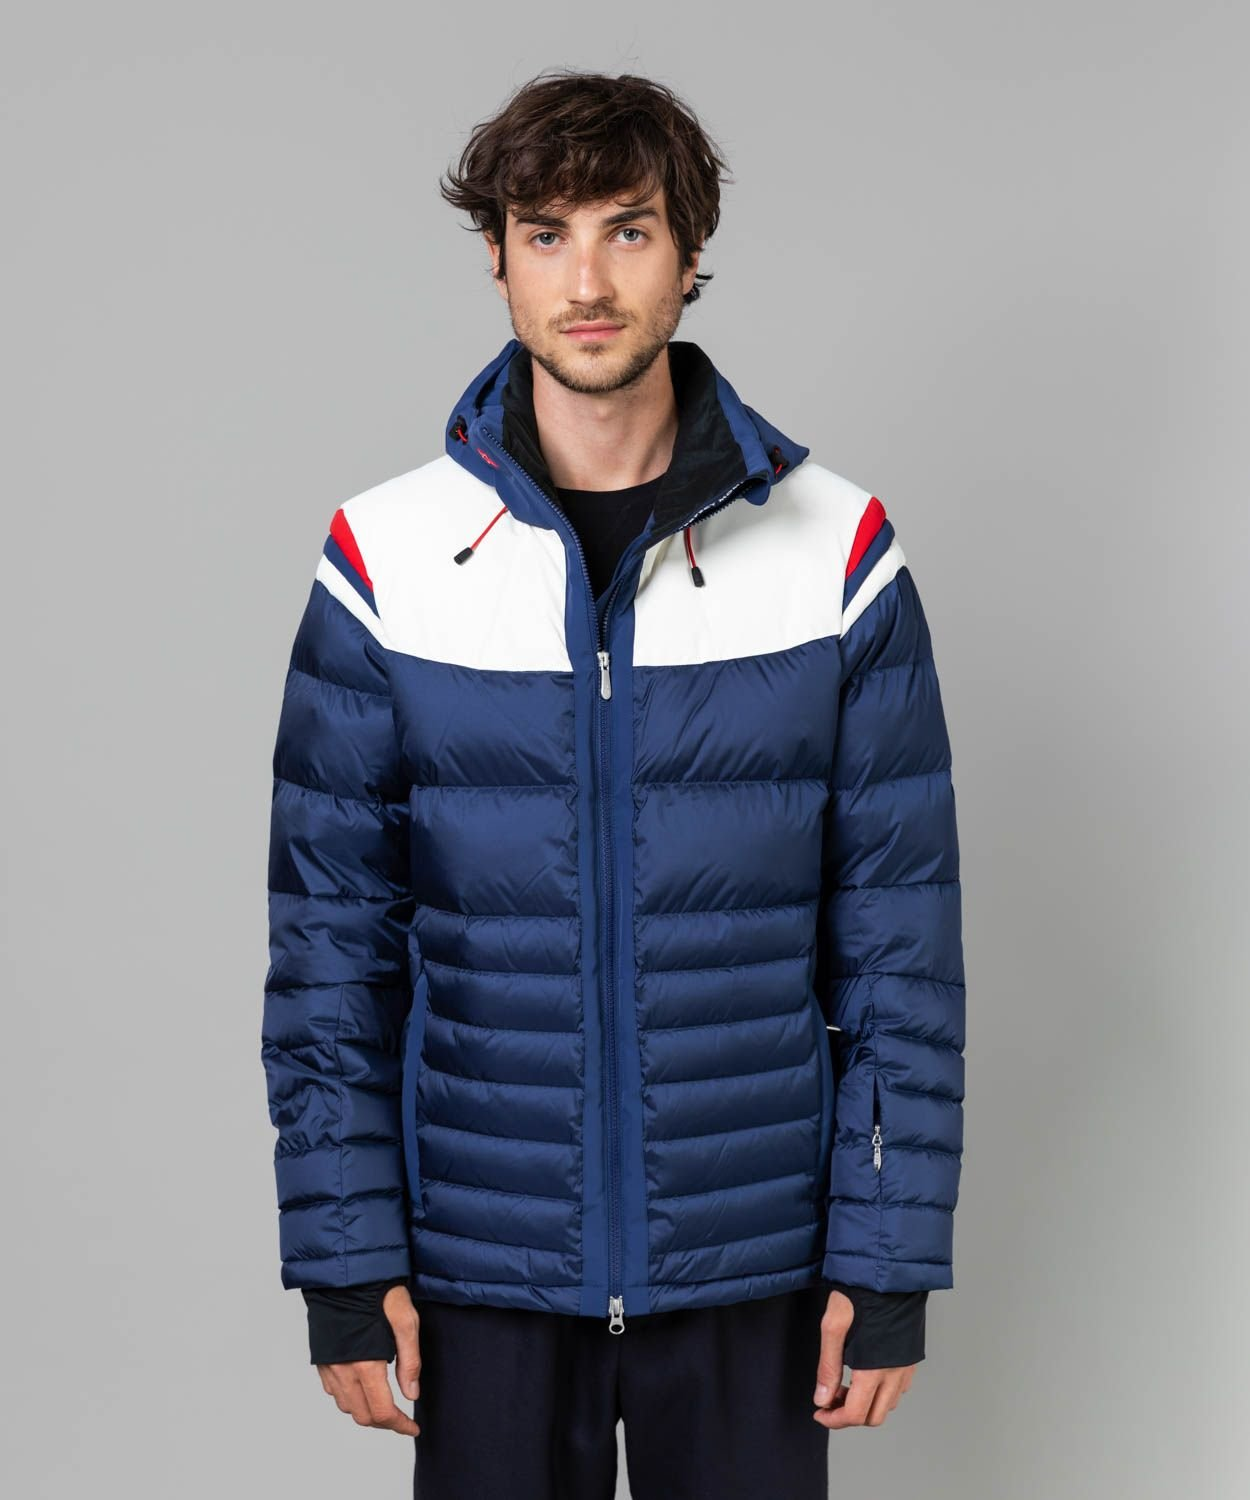 Men's Glacier Ski Jacket Sale